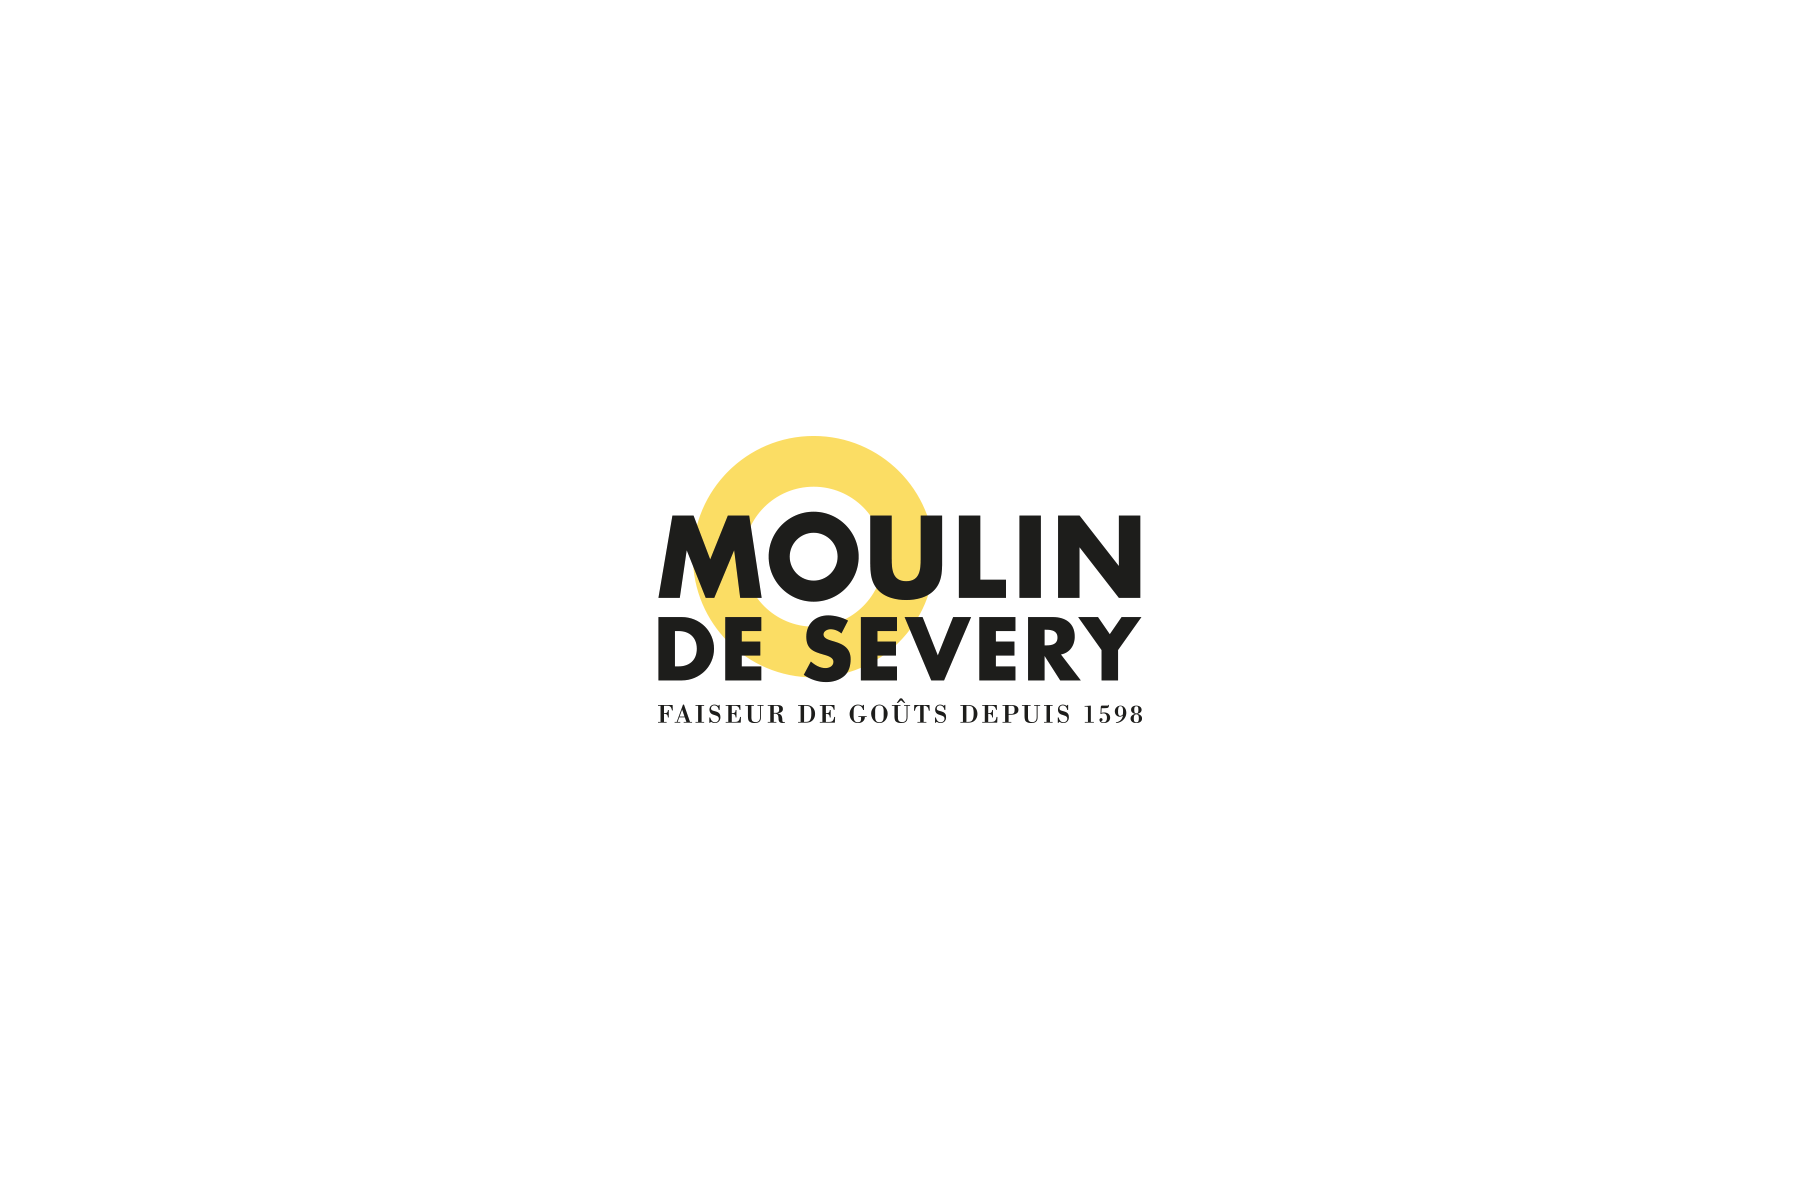 moulinsevery-logo.png